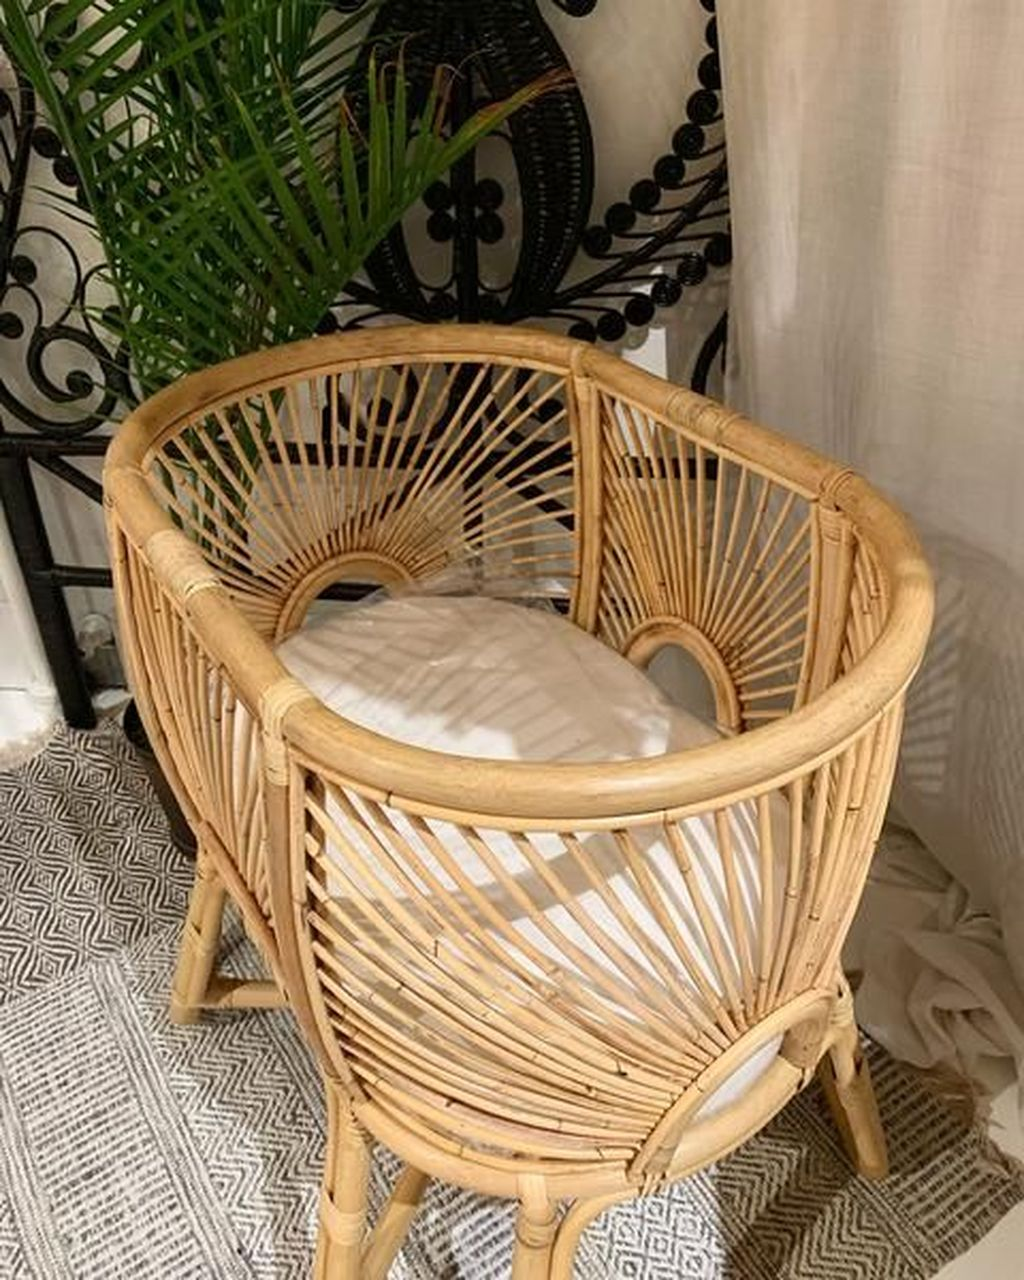 Stunning Rattan Furniture Design Ideas 27